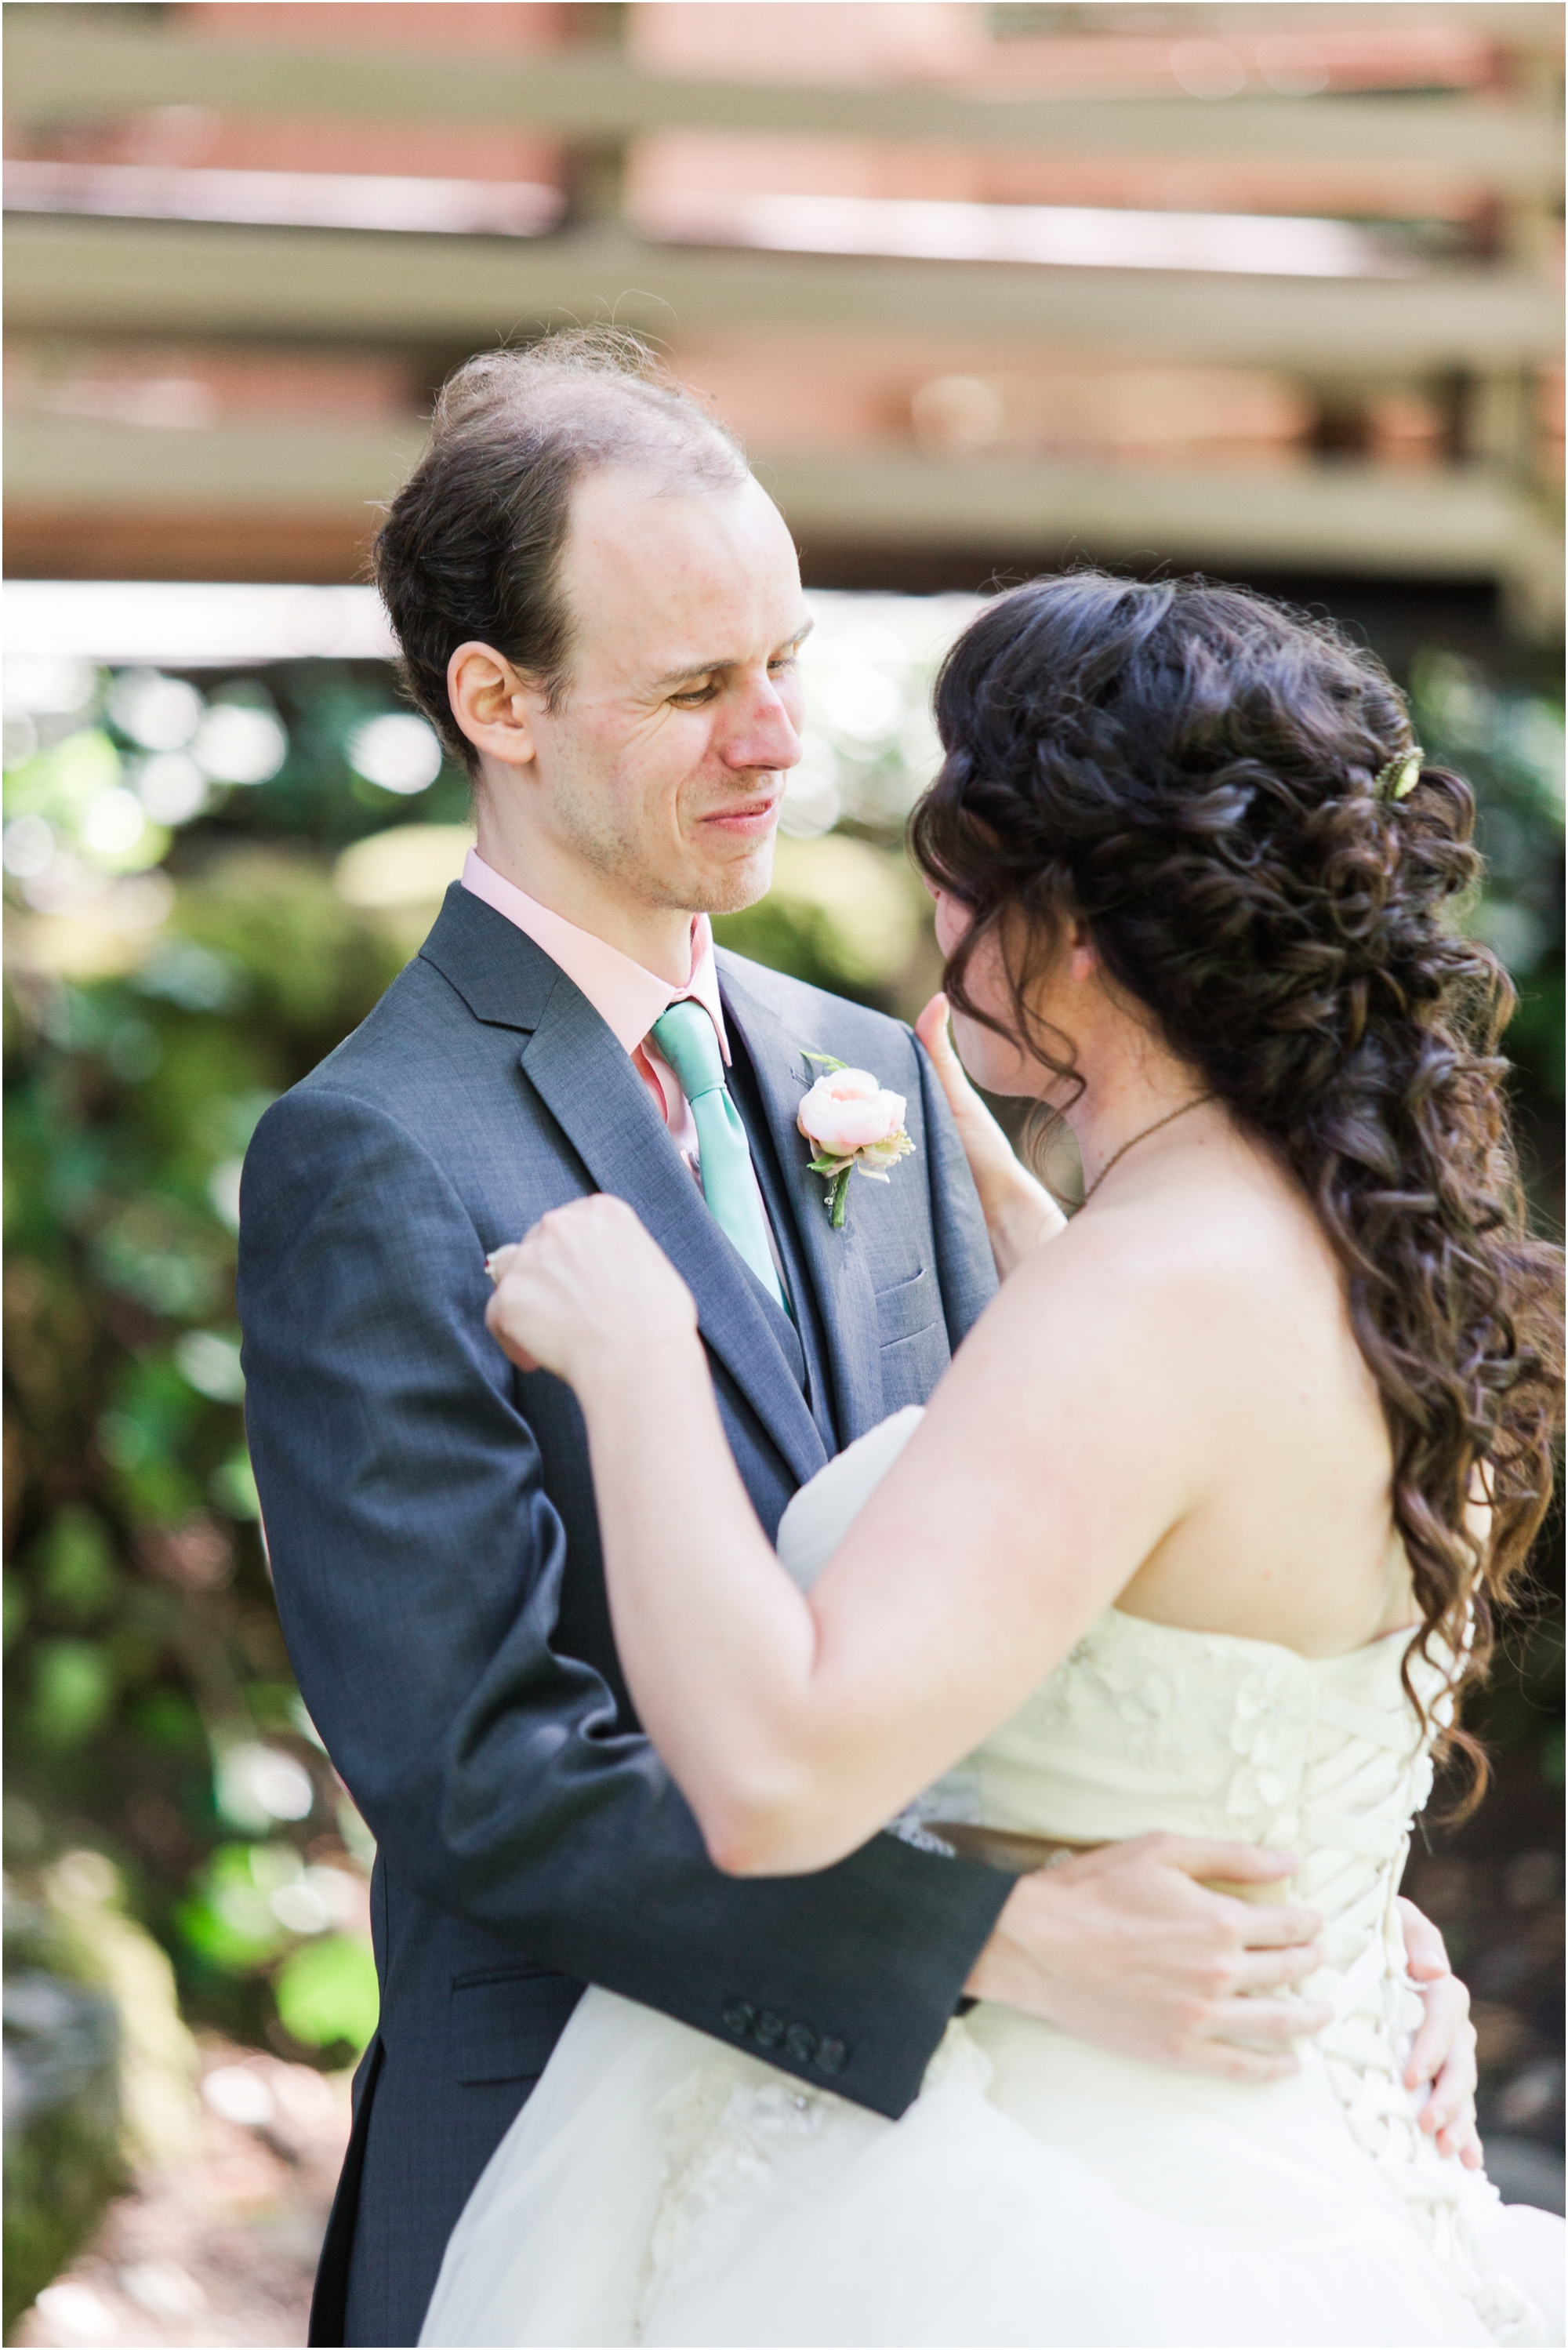 Saratoga Springs wedding pictures by Briana Calderon Photography_1823.jpg